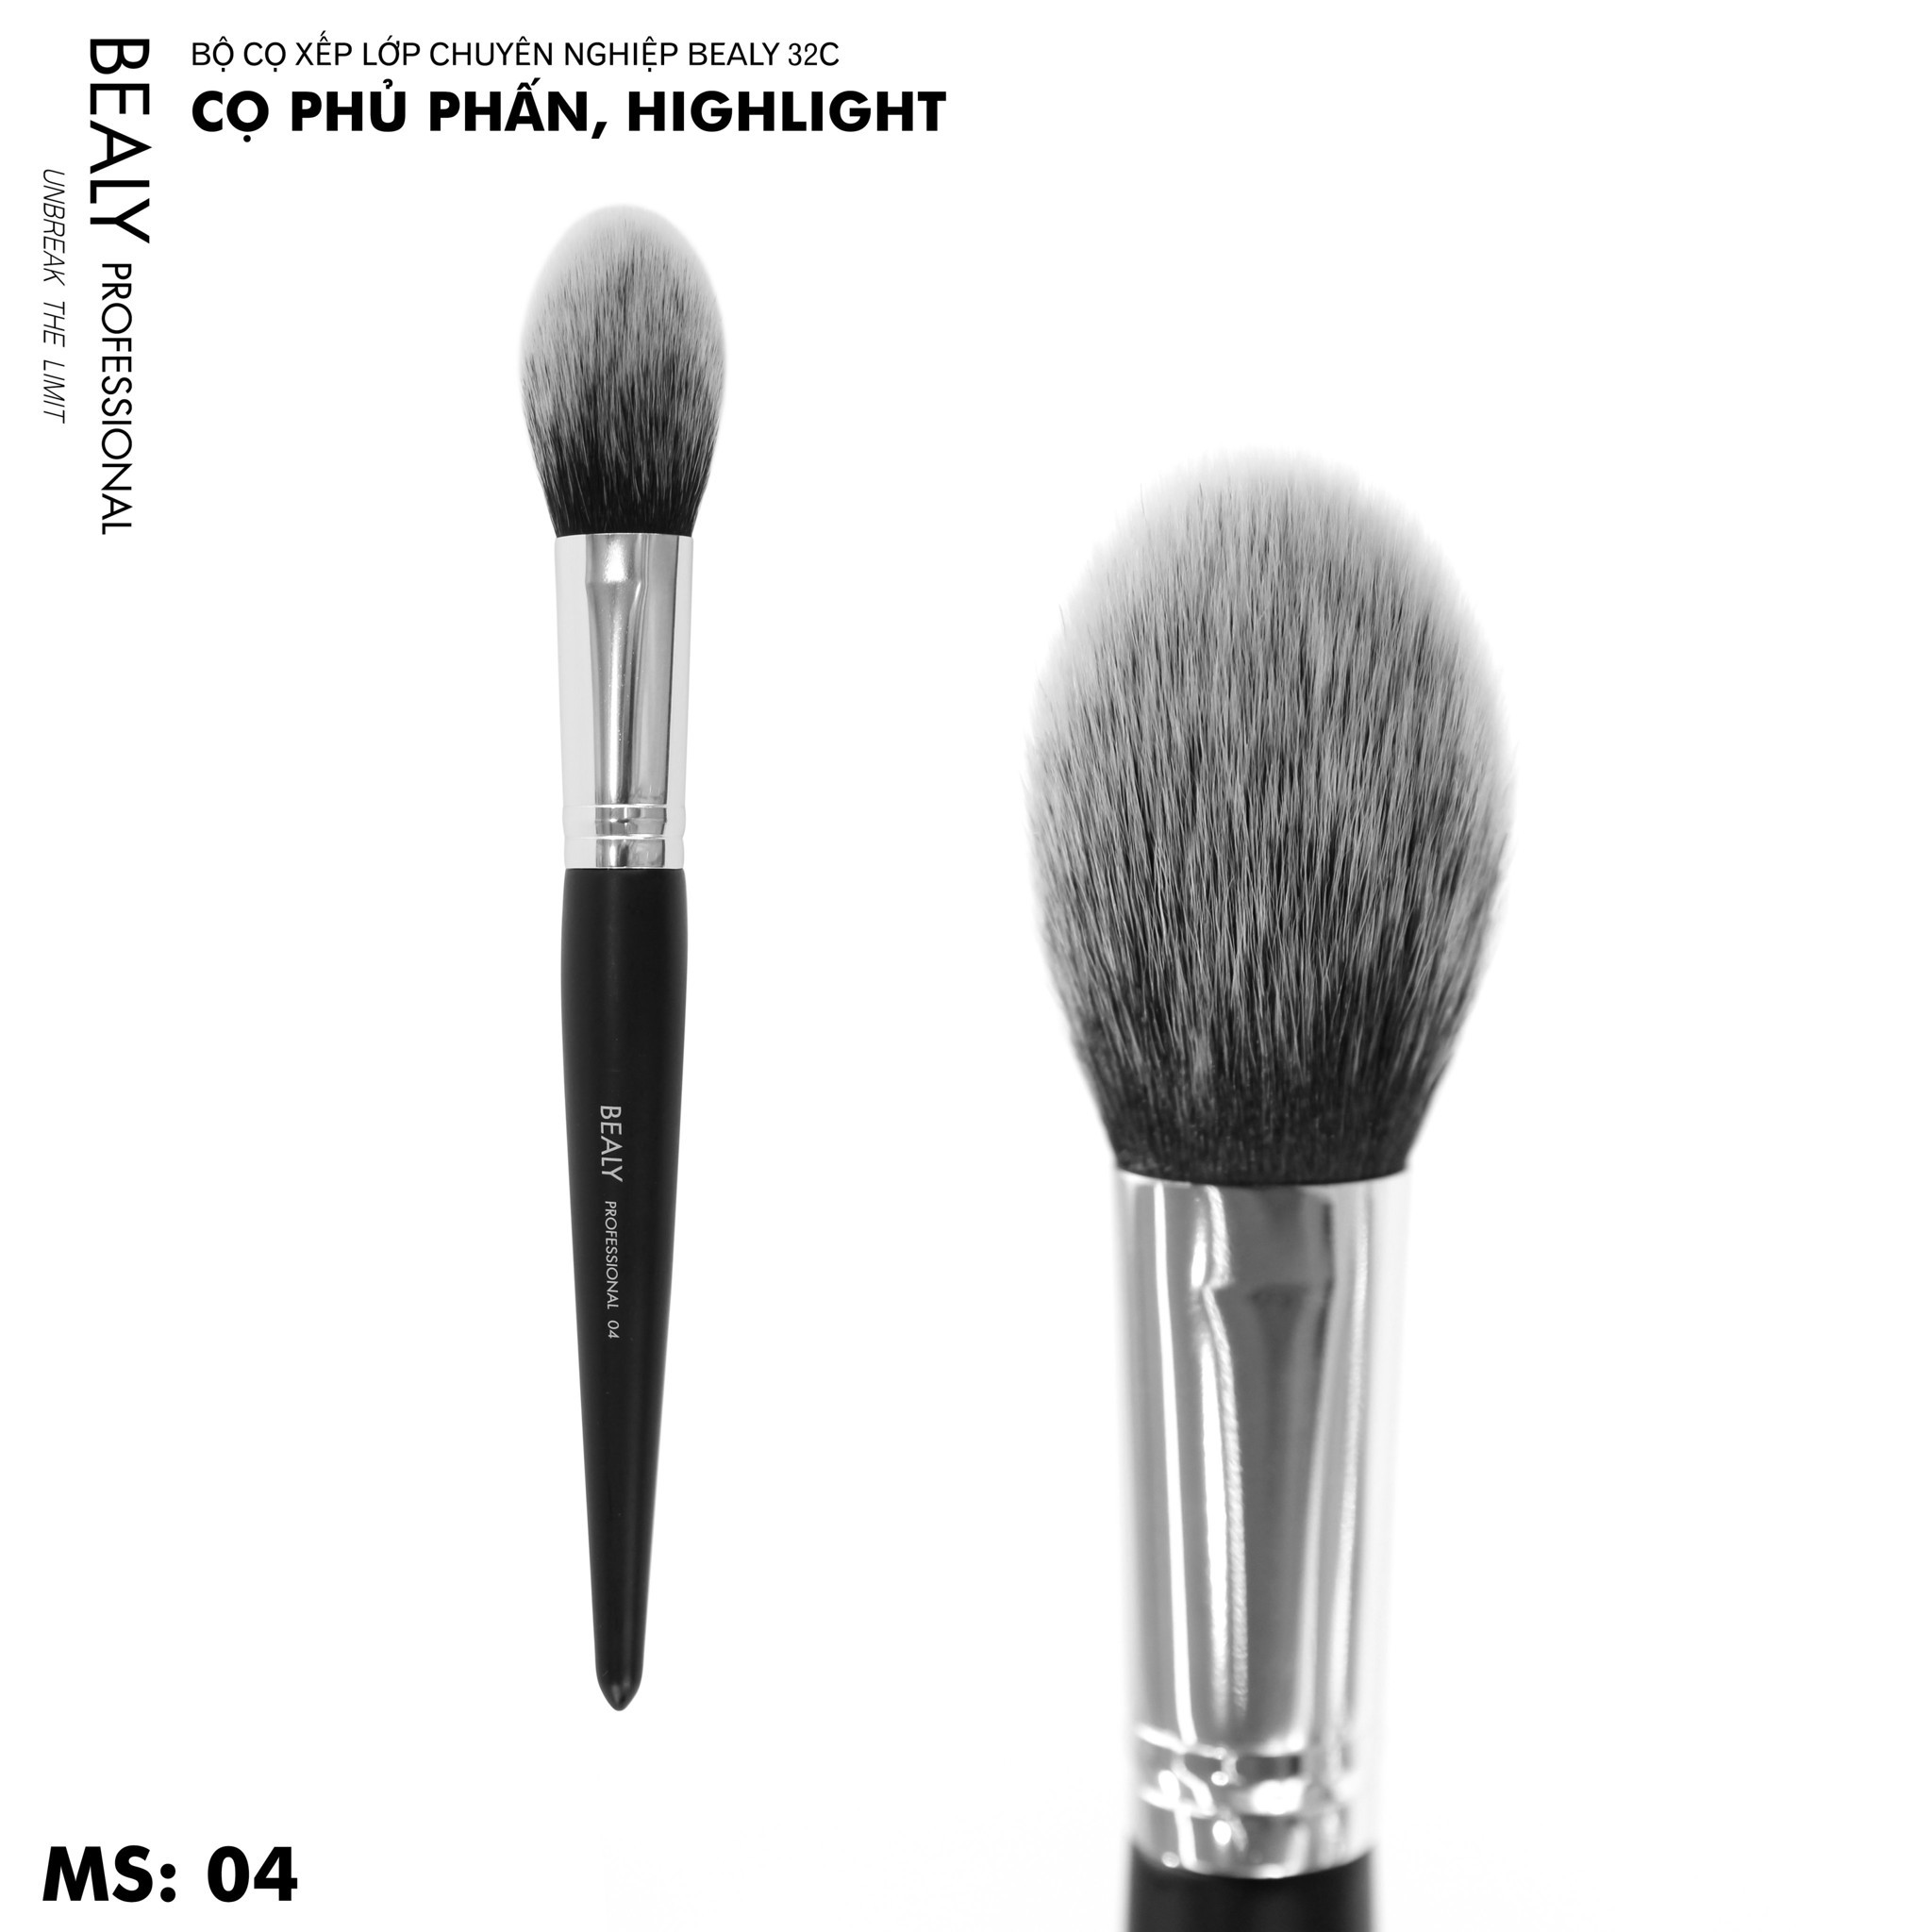 CỌ PHỦ PHẤN, HIGHLIGHT - CXL32C - N0.04